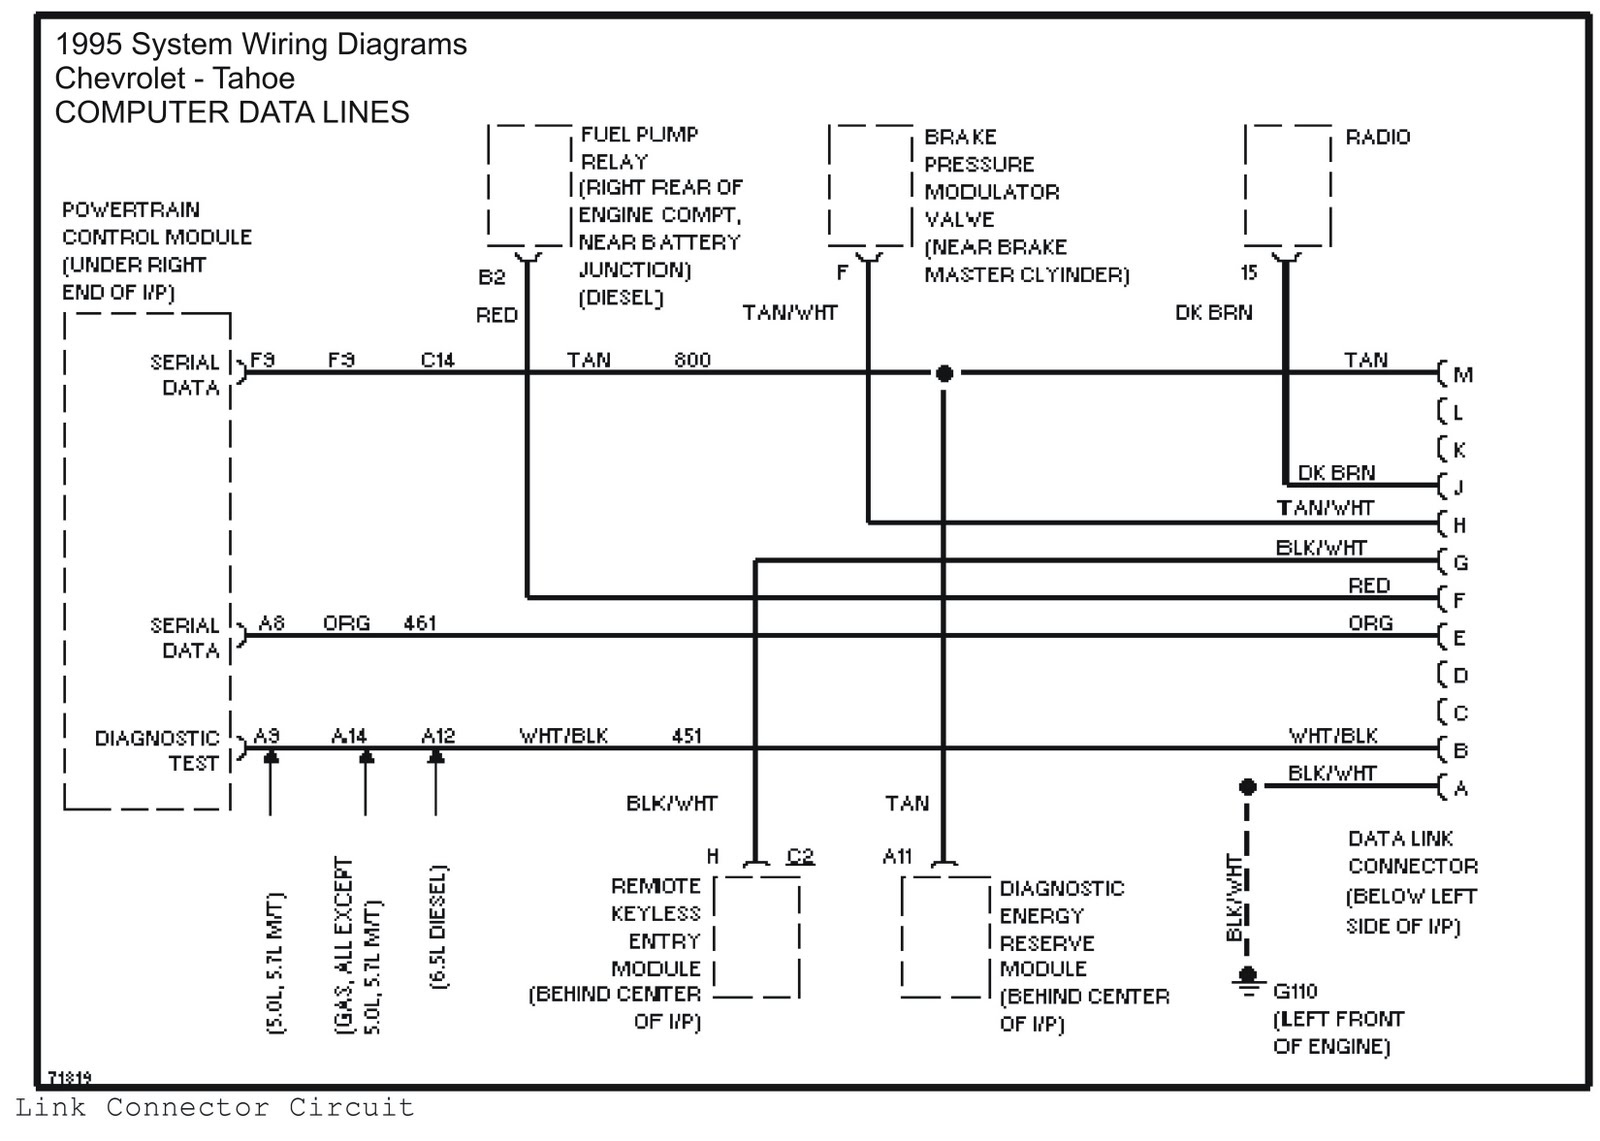 1996 Chevrolet Tahoe Stereo Wiring Diagram Diagrams Gm Factory Radio Harness Chevy Express Get Free Image About Amp